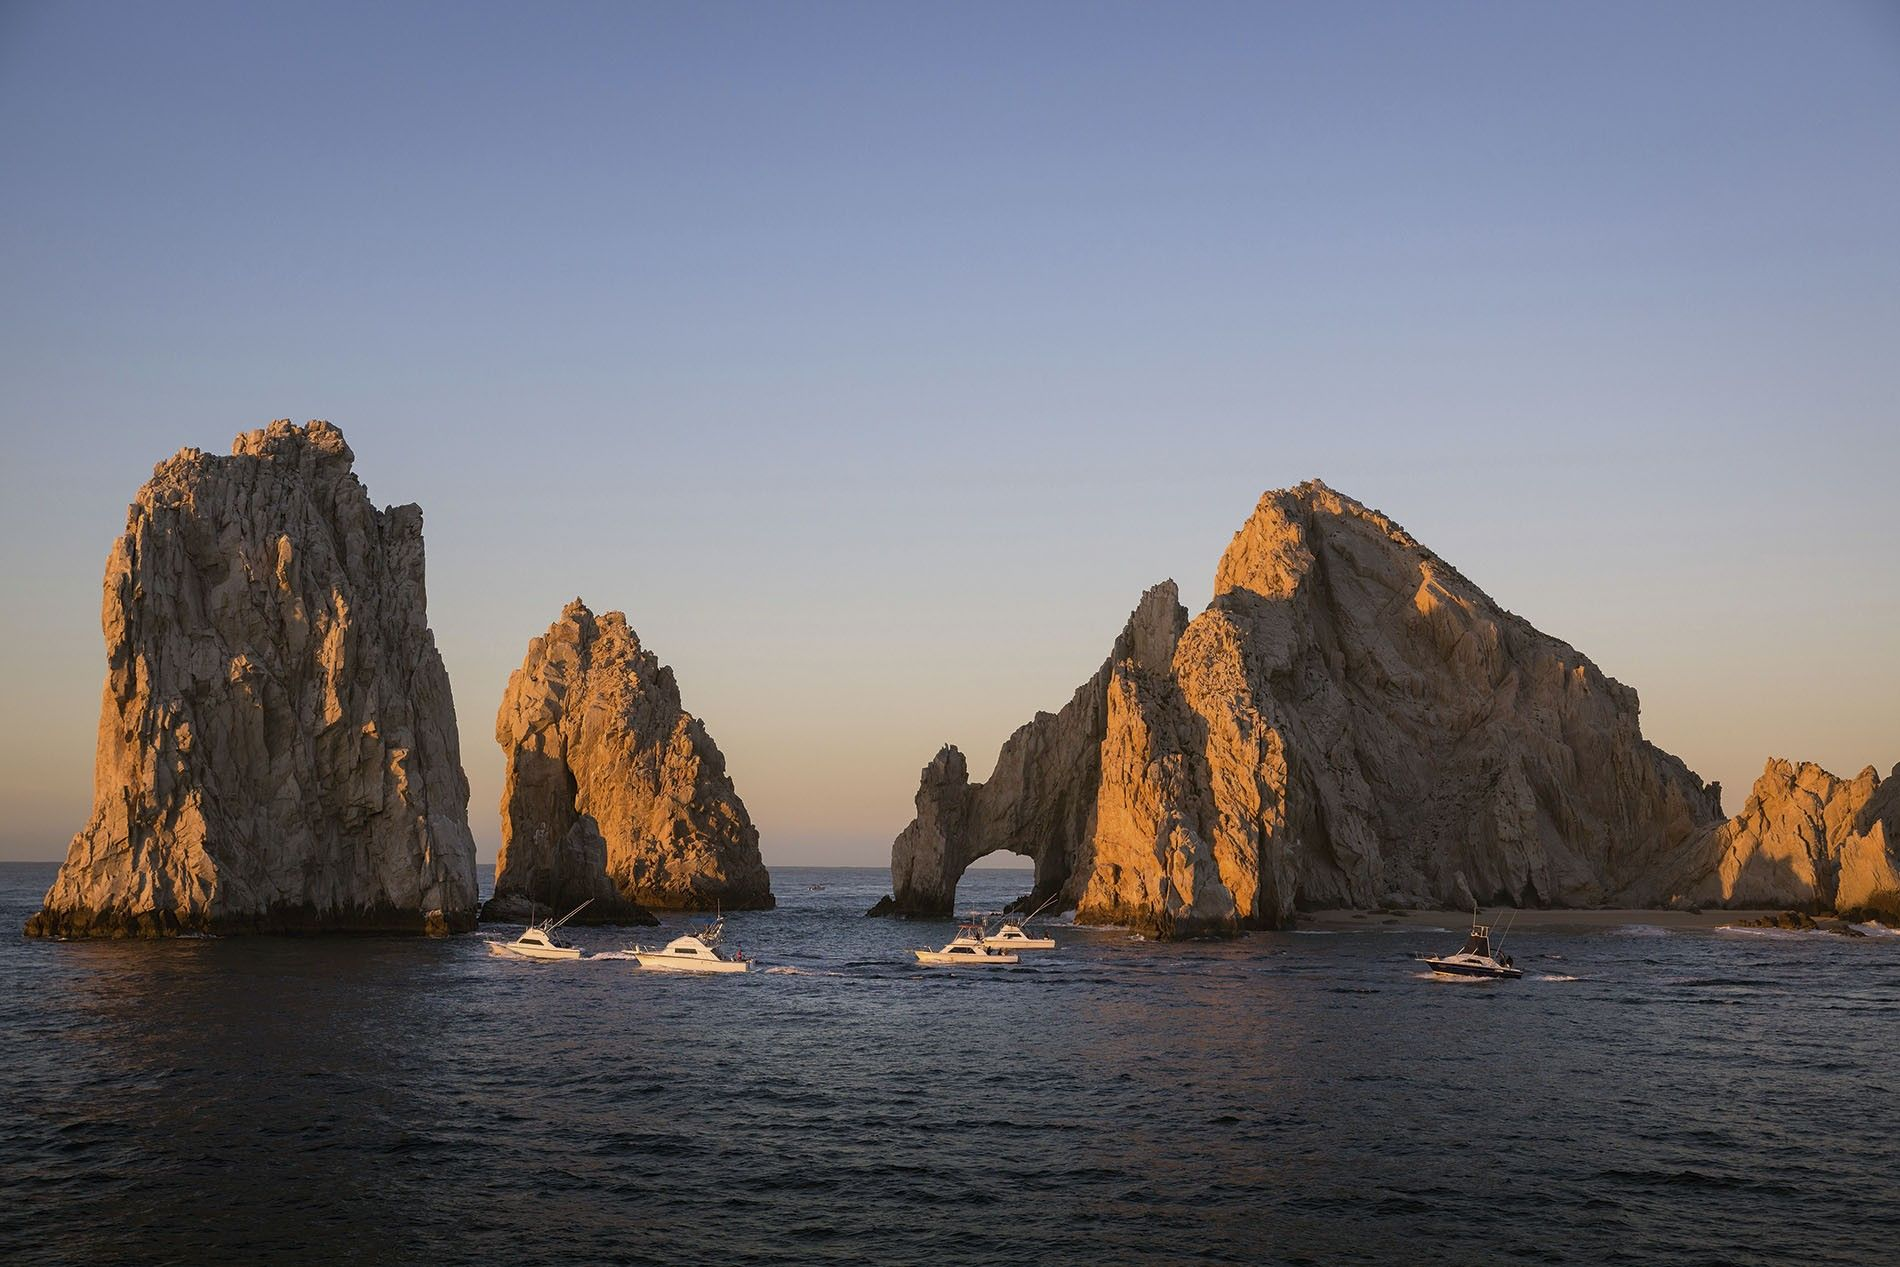 The Friars are stunning geological features in the Sea of Cortez.